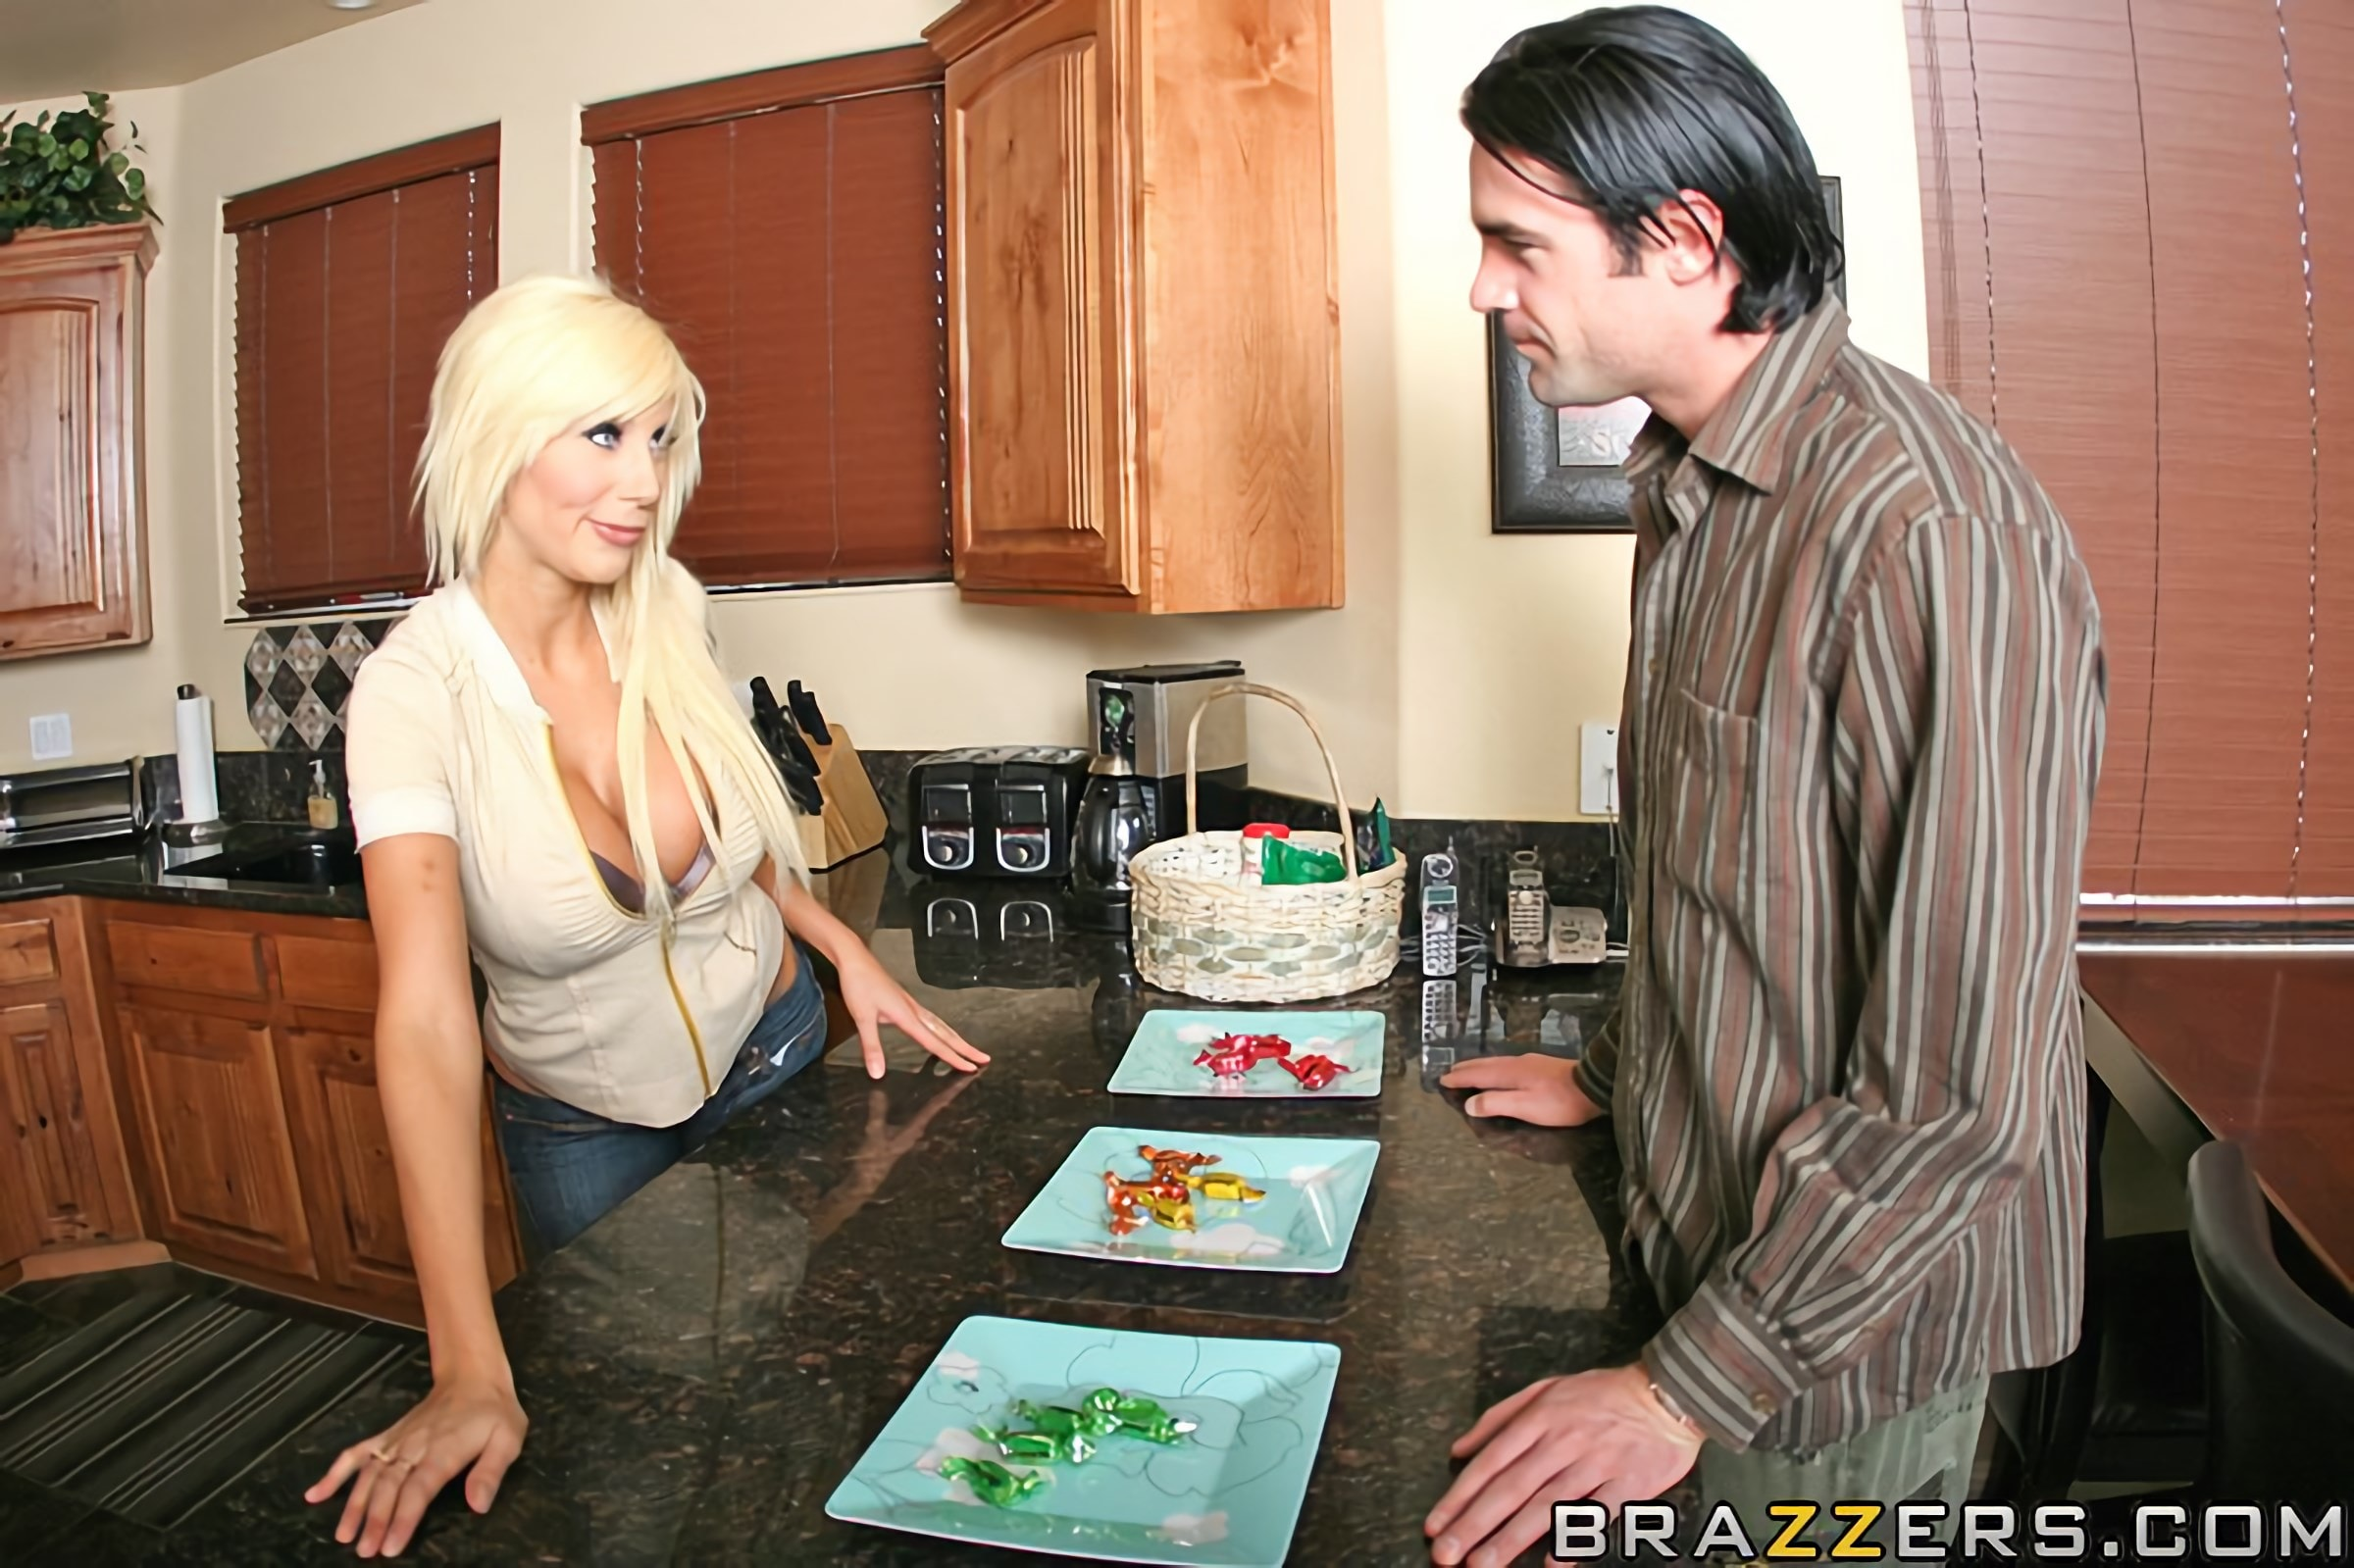 Brazzers 'My brothers keeper' starring Puma Swede (photo 4)